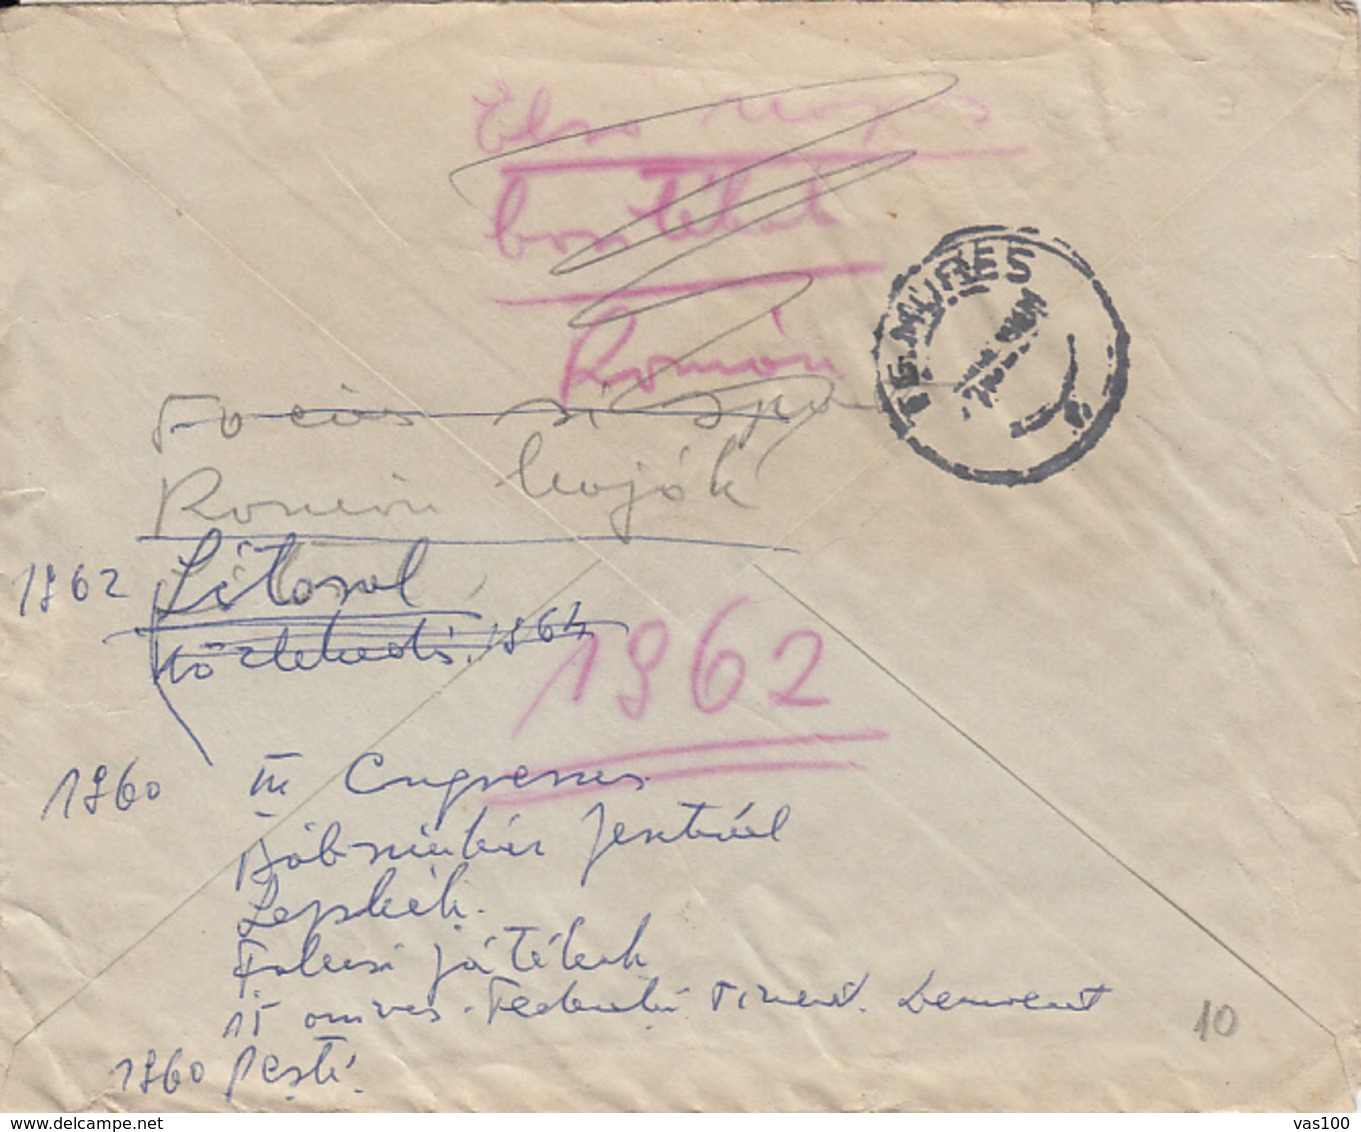 PERFINS, AVIATION STAMP, AMOUNT 6, BUCHAREST, BANK, RED MACHINE STAMPS ON COVER, 1931, ROMANIA - Perfins